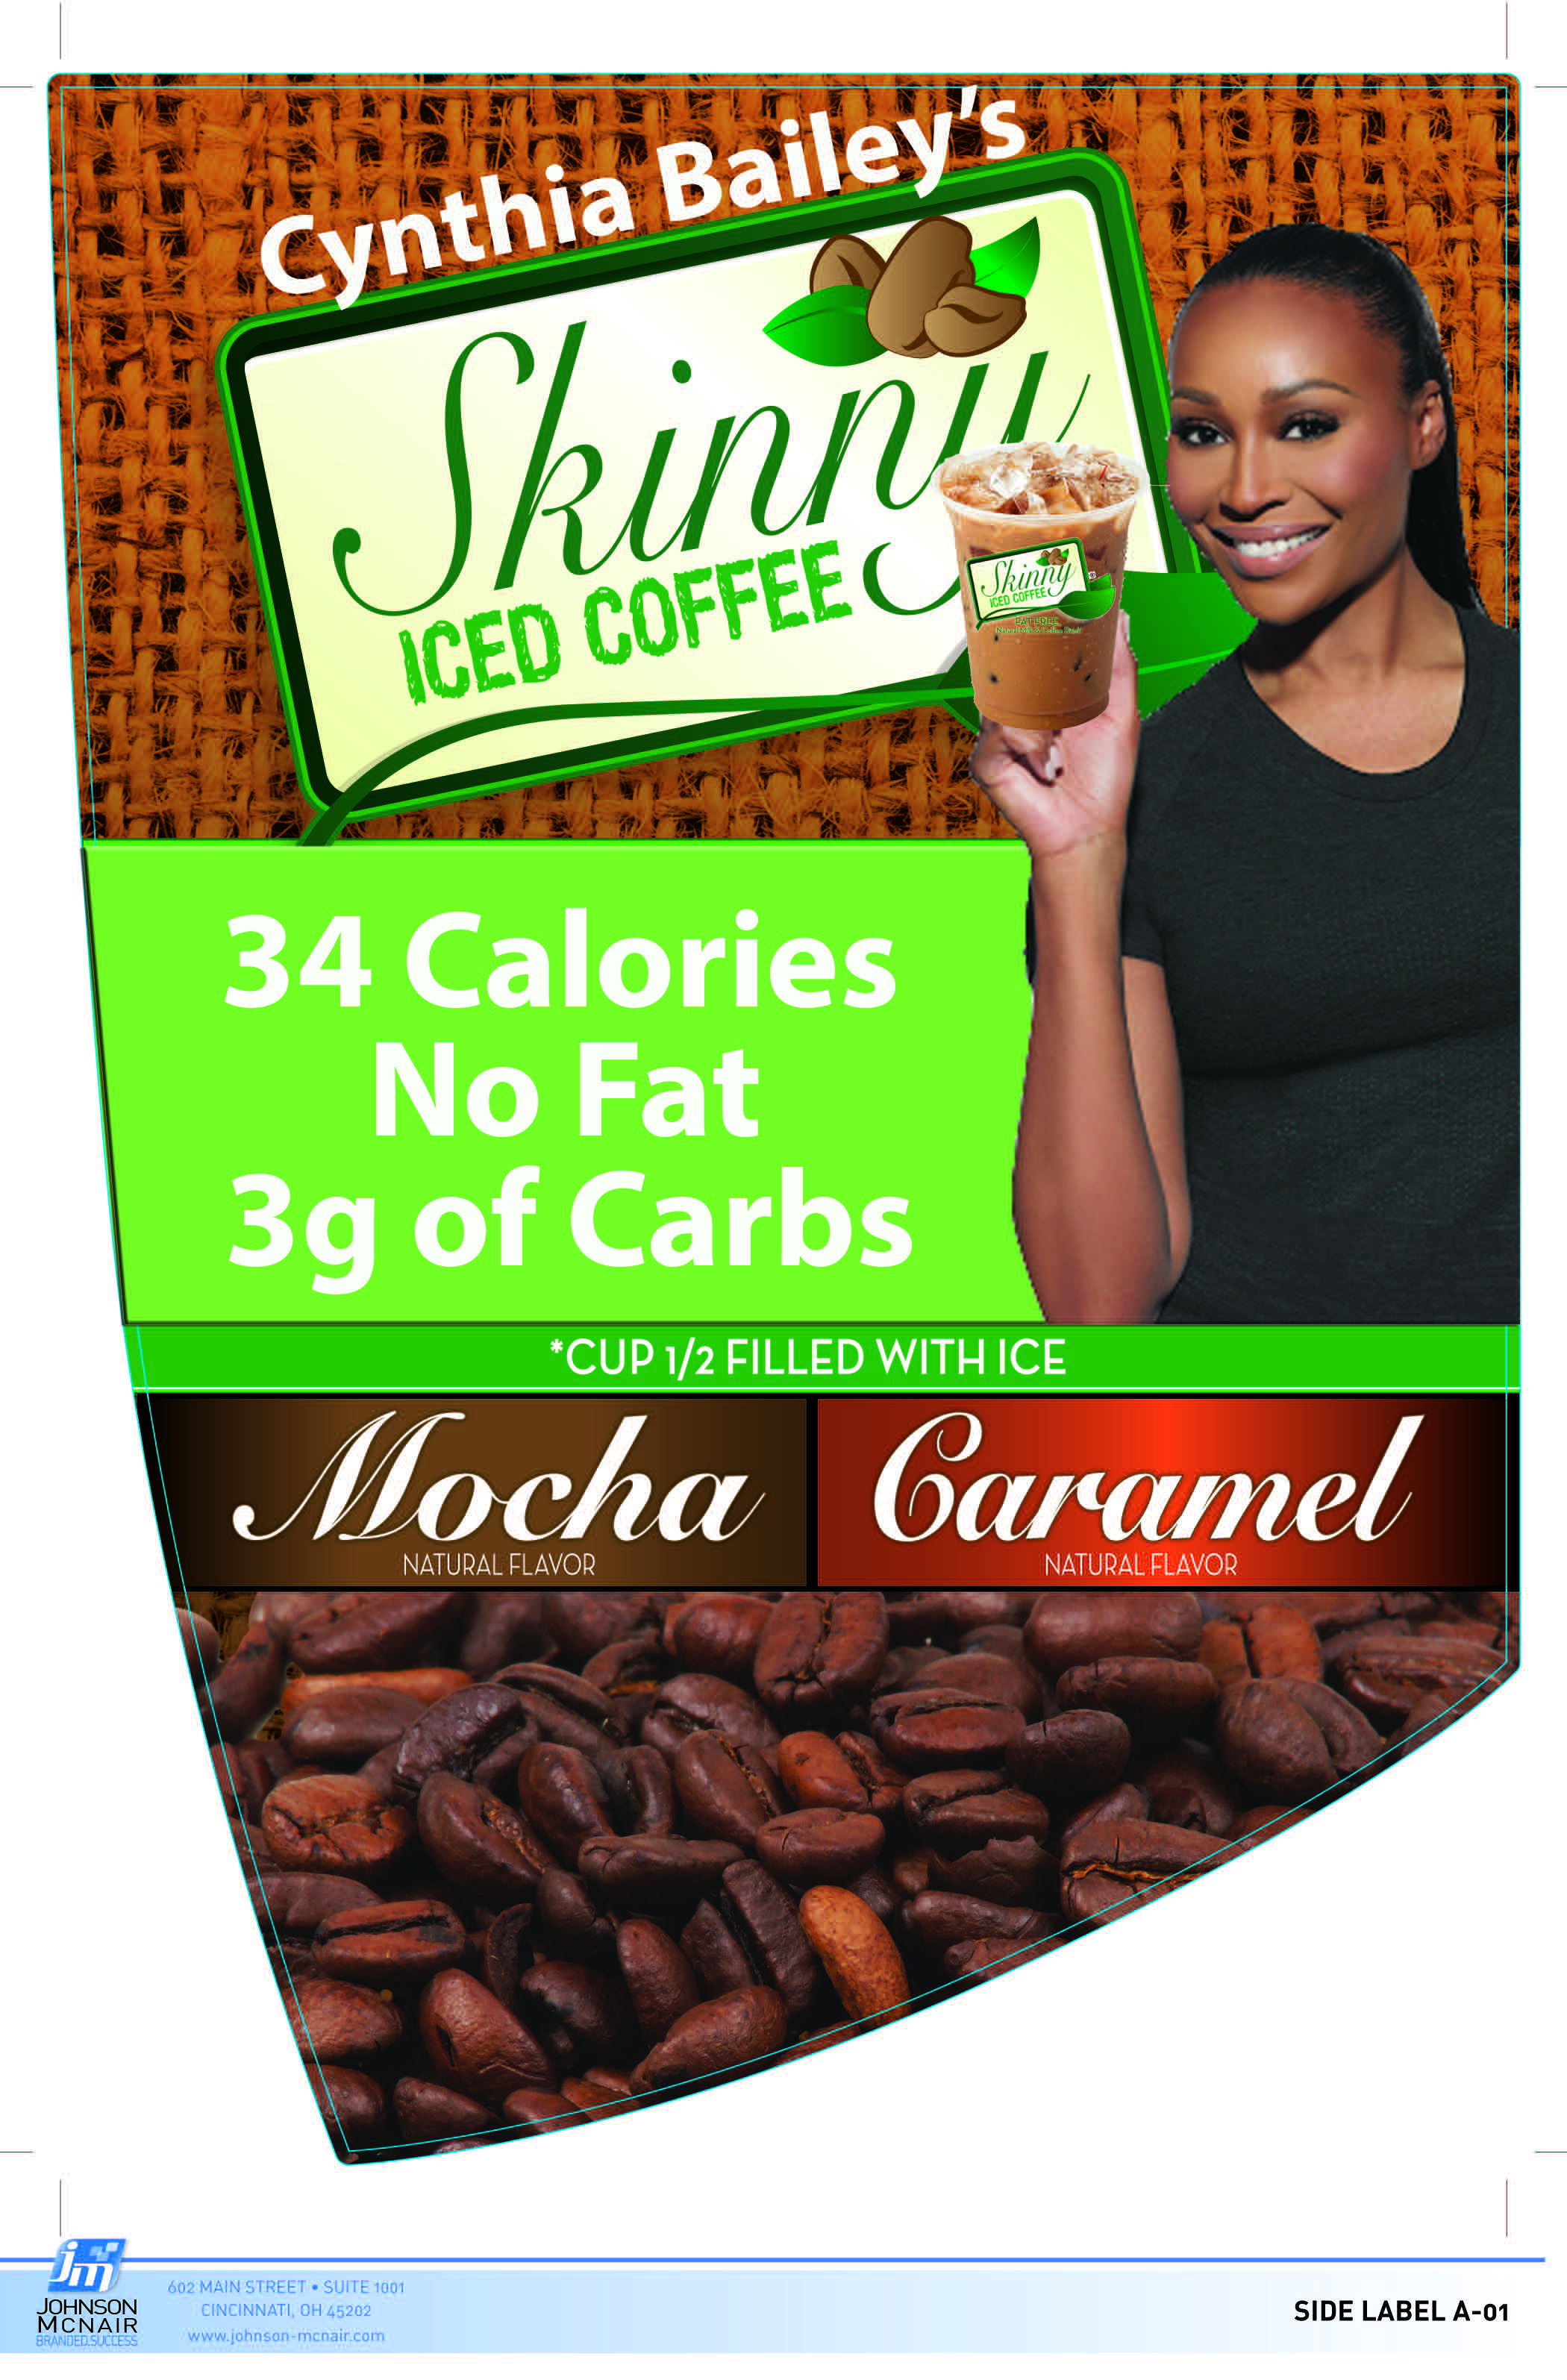 Cynthia Bailey Skinny Iced Coffee Side Panel  3-21-16